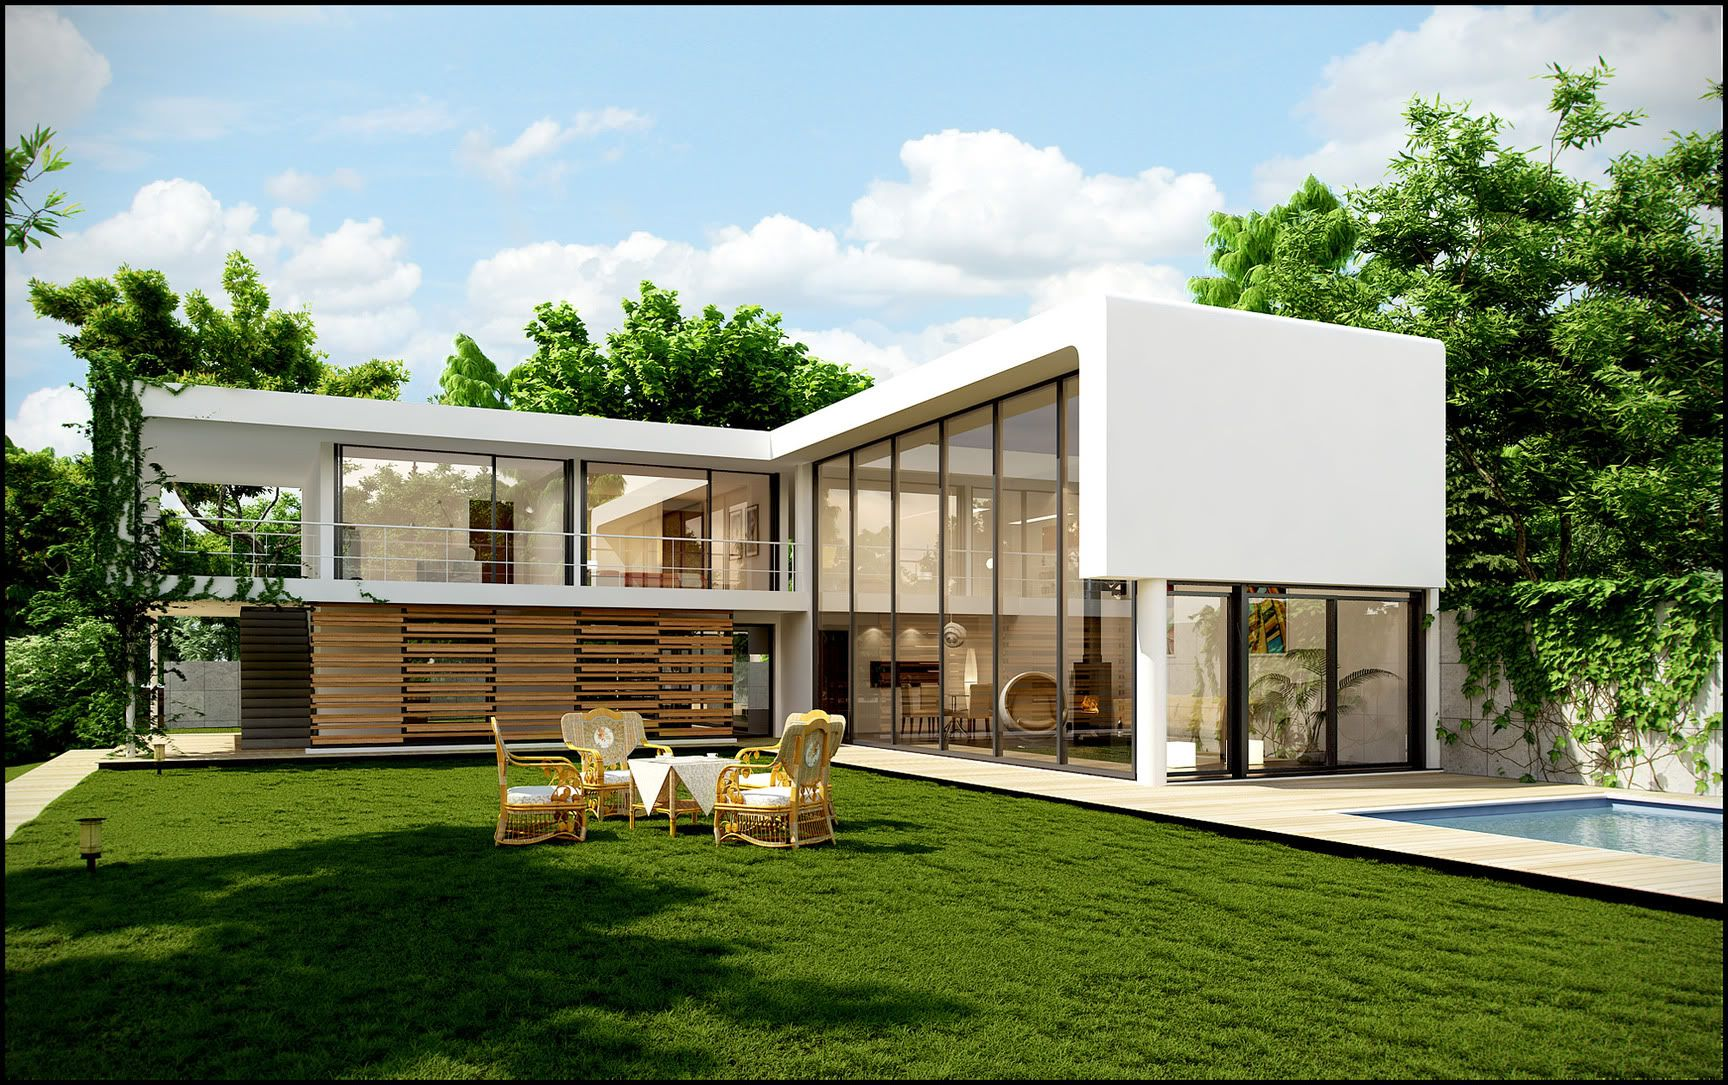 Architecture exterior impressive l shape small modern house designs with green area grass garden Home building architecture